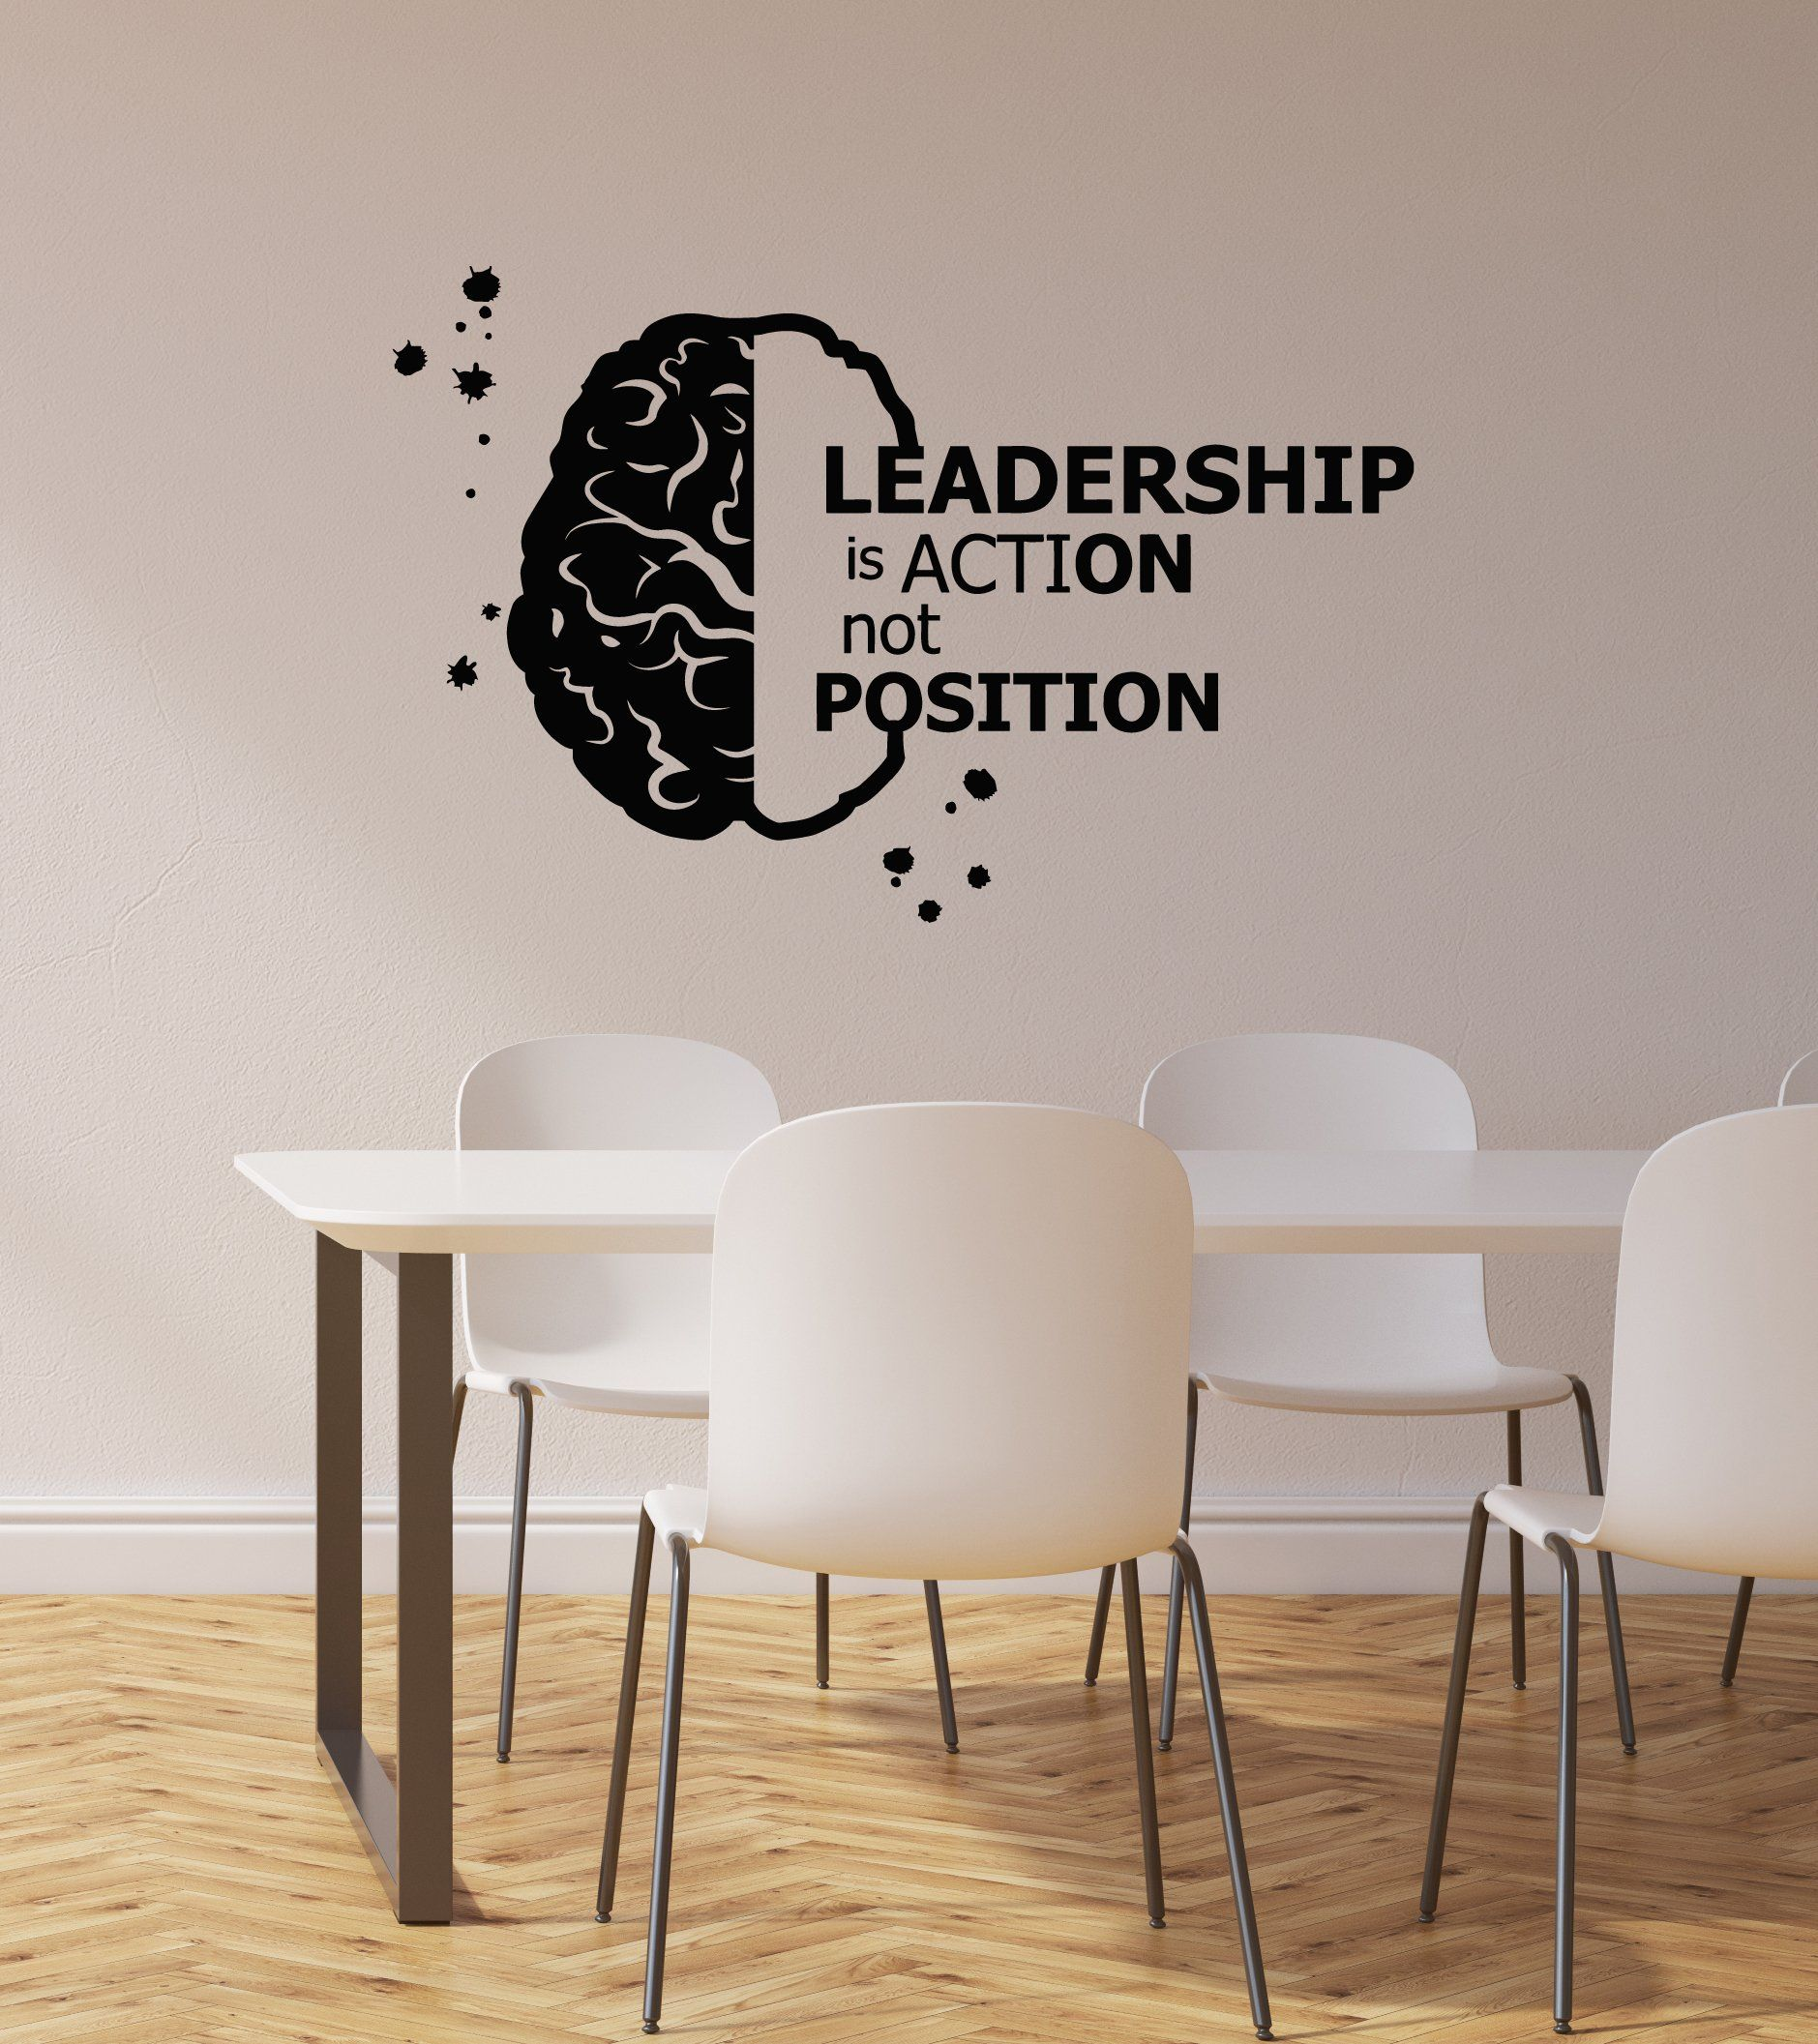 Vinyl Wall Decal Office Idea Strategy Management Succes Lamp Stickers g1320